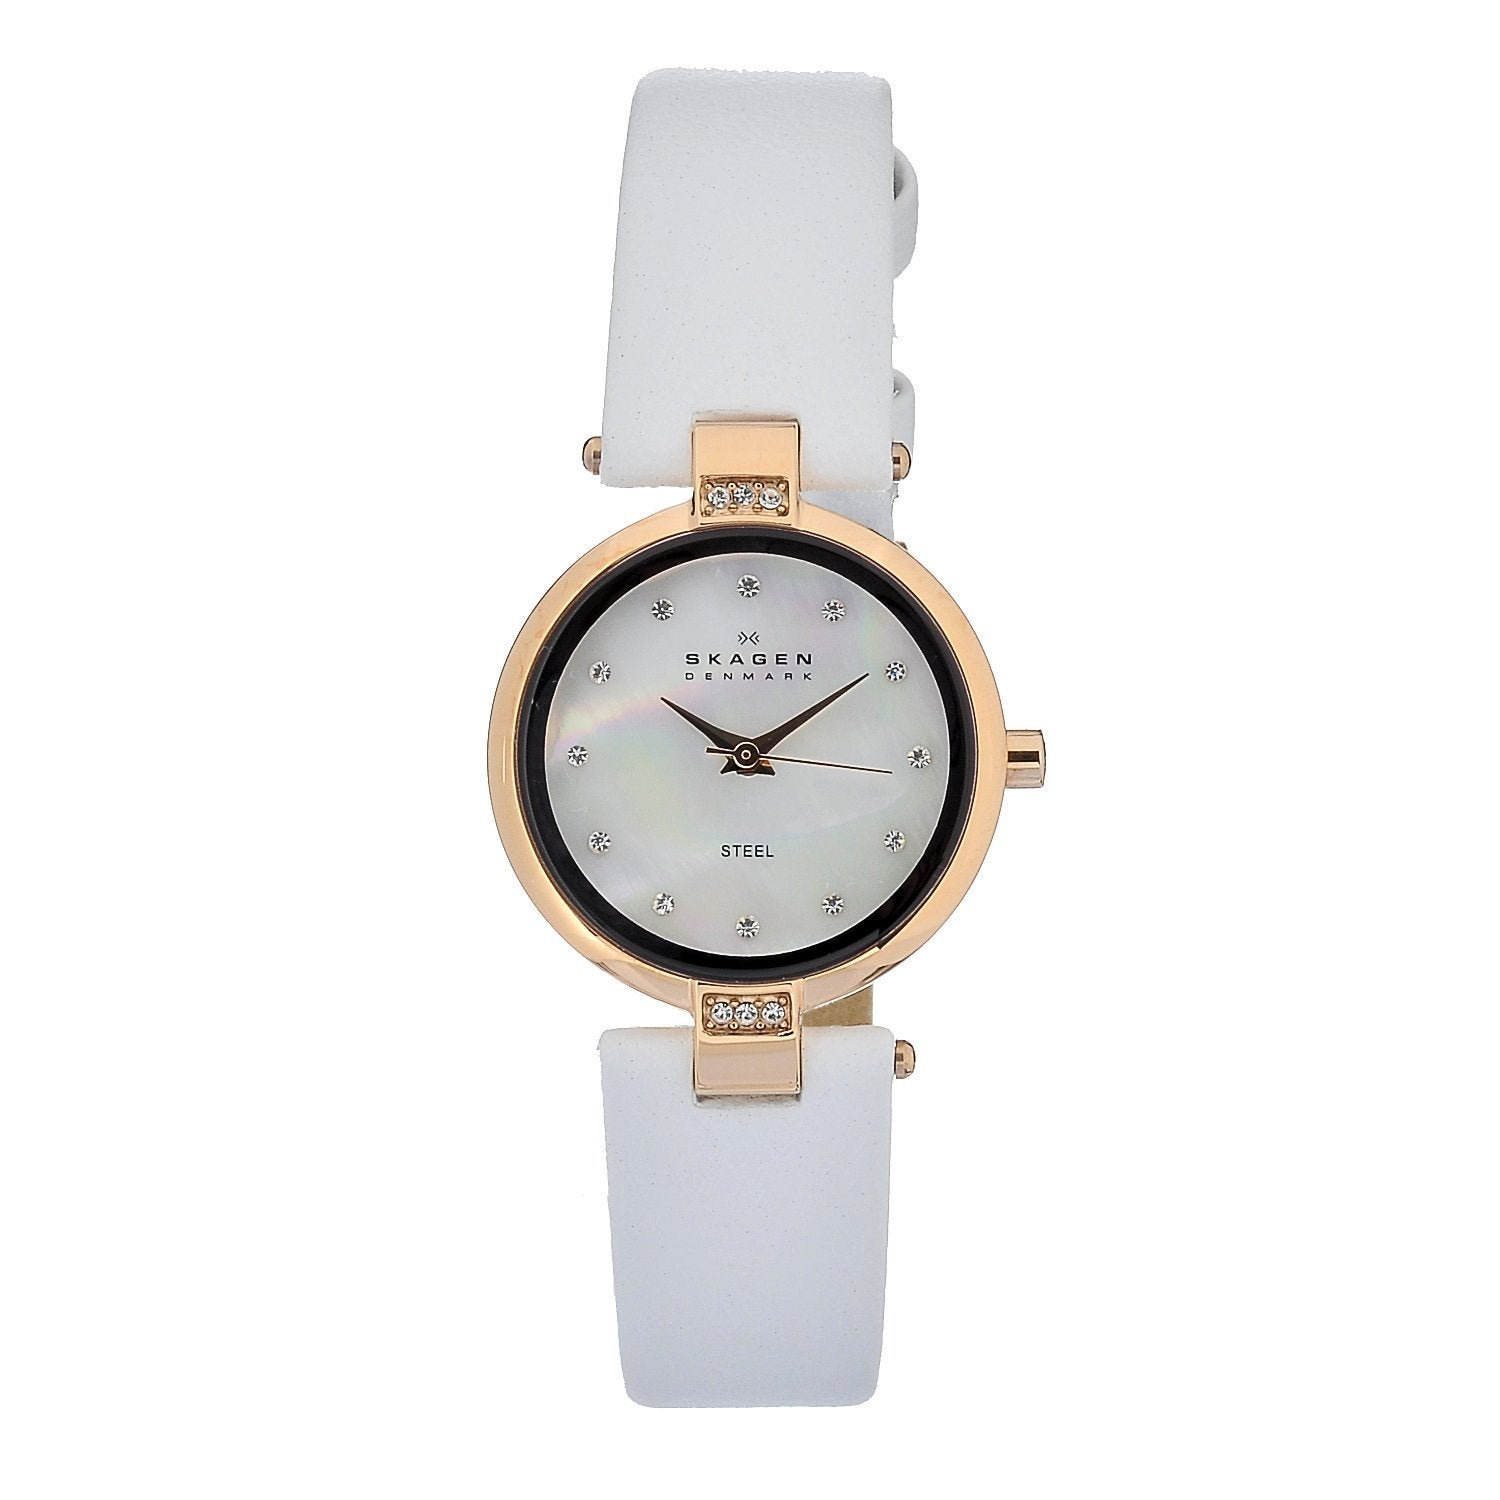 e83af3e0c Shop Skagen Women's Leather Collection Austrian Crystal Round White Strap  Watch - Free Shipping Today - Overstock - 6803587